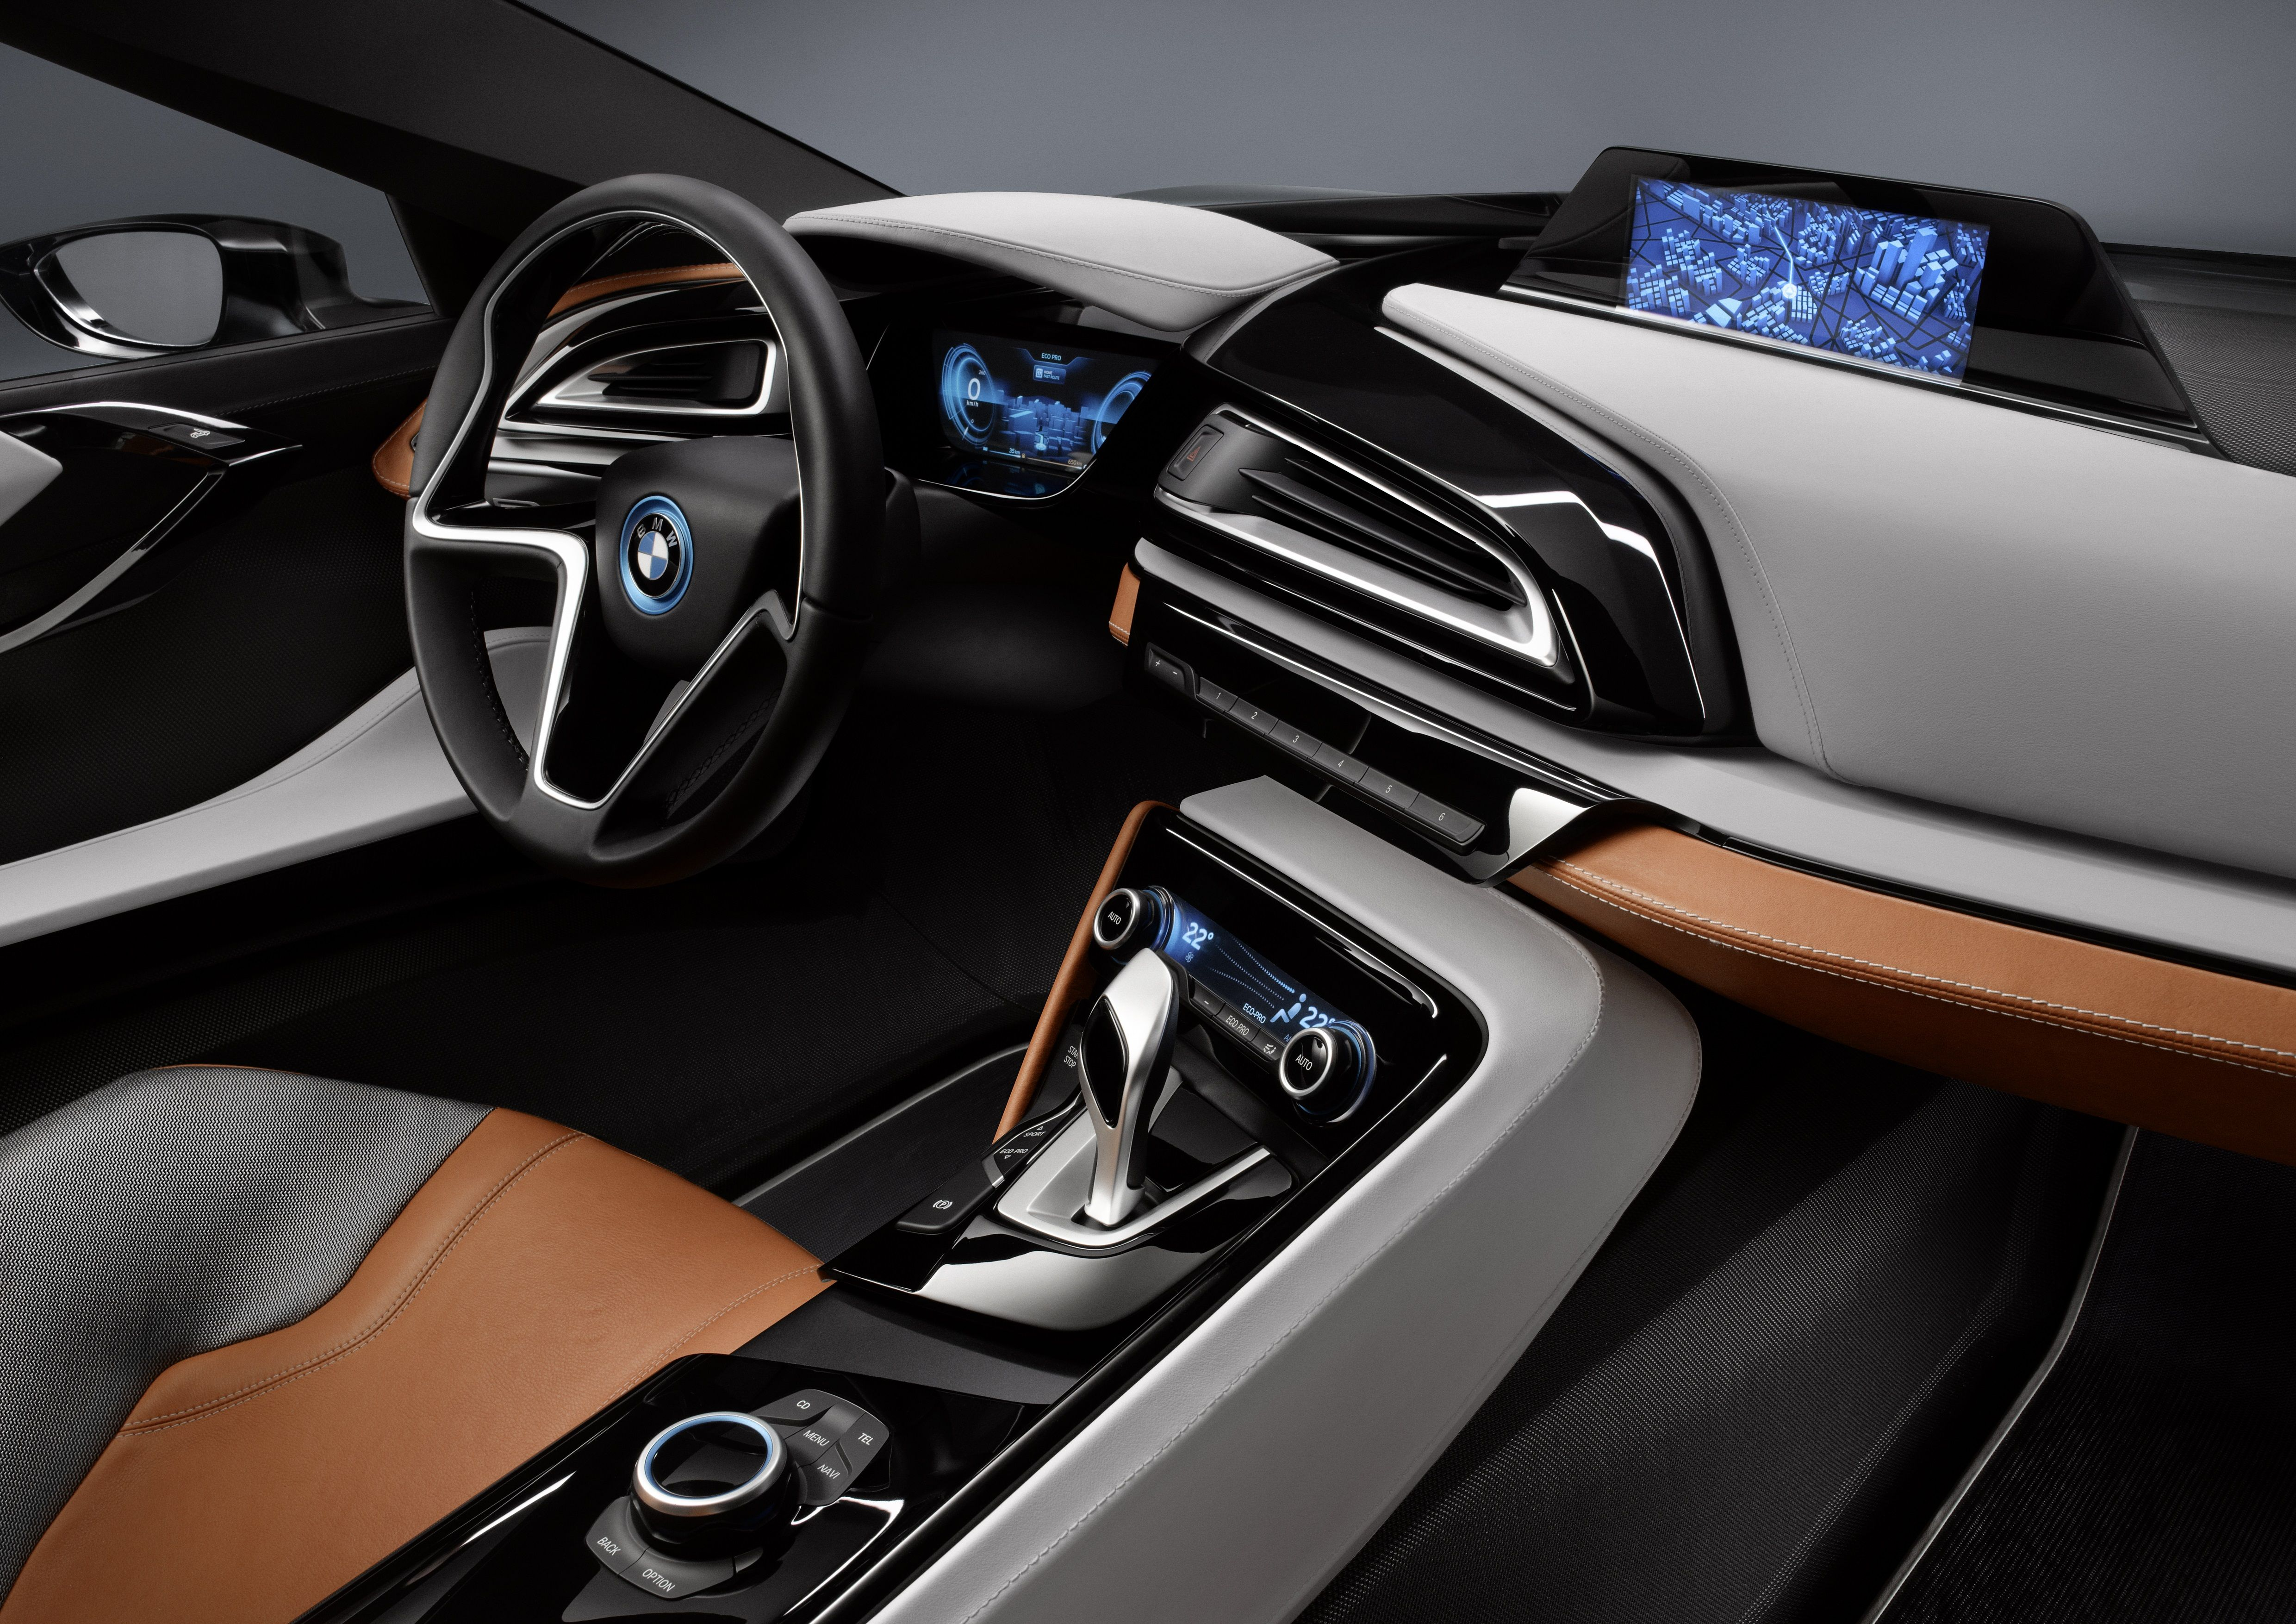 Pin On I8 Spyder Concept